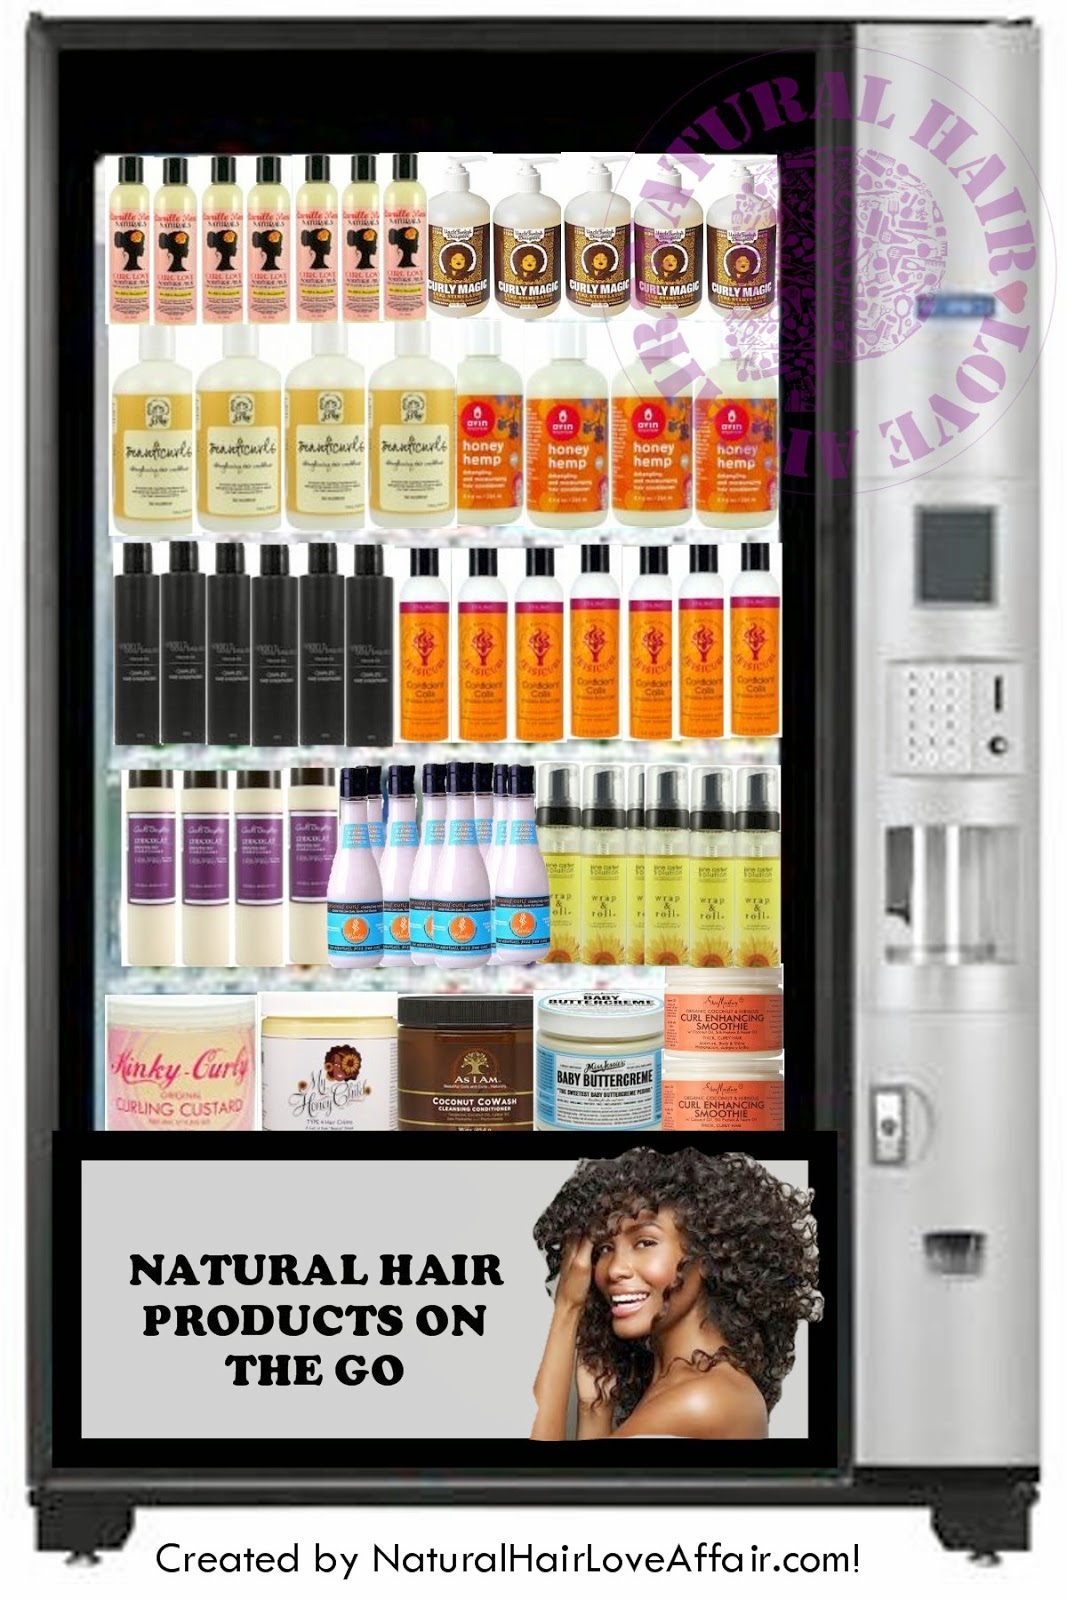 Hair accessories vending machines - Wednesday April 2 2014